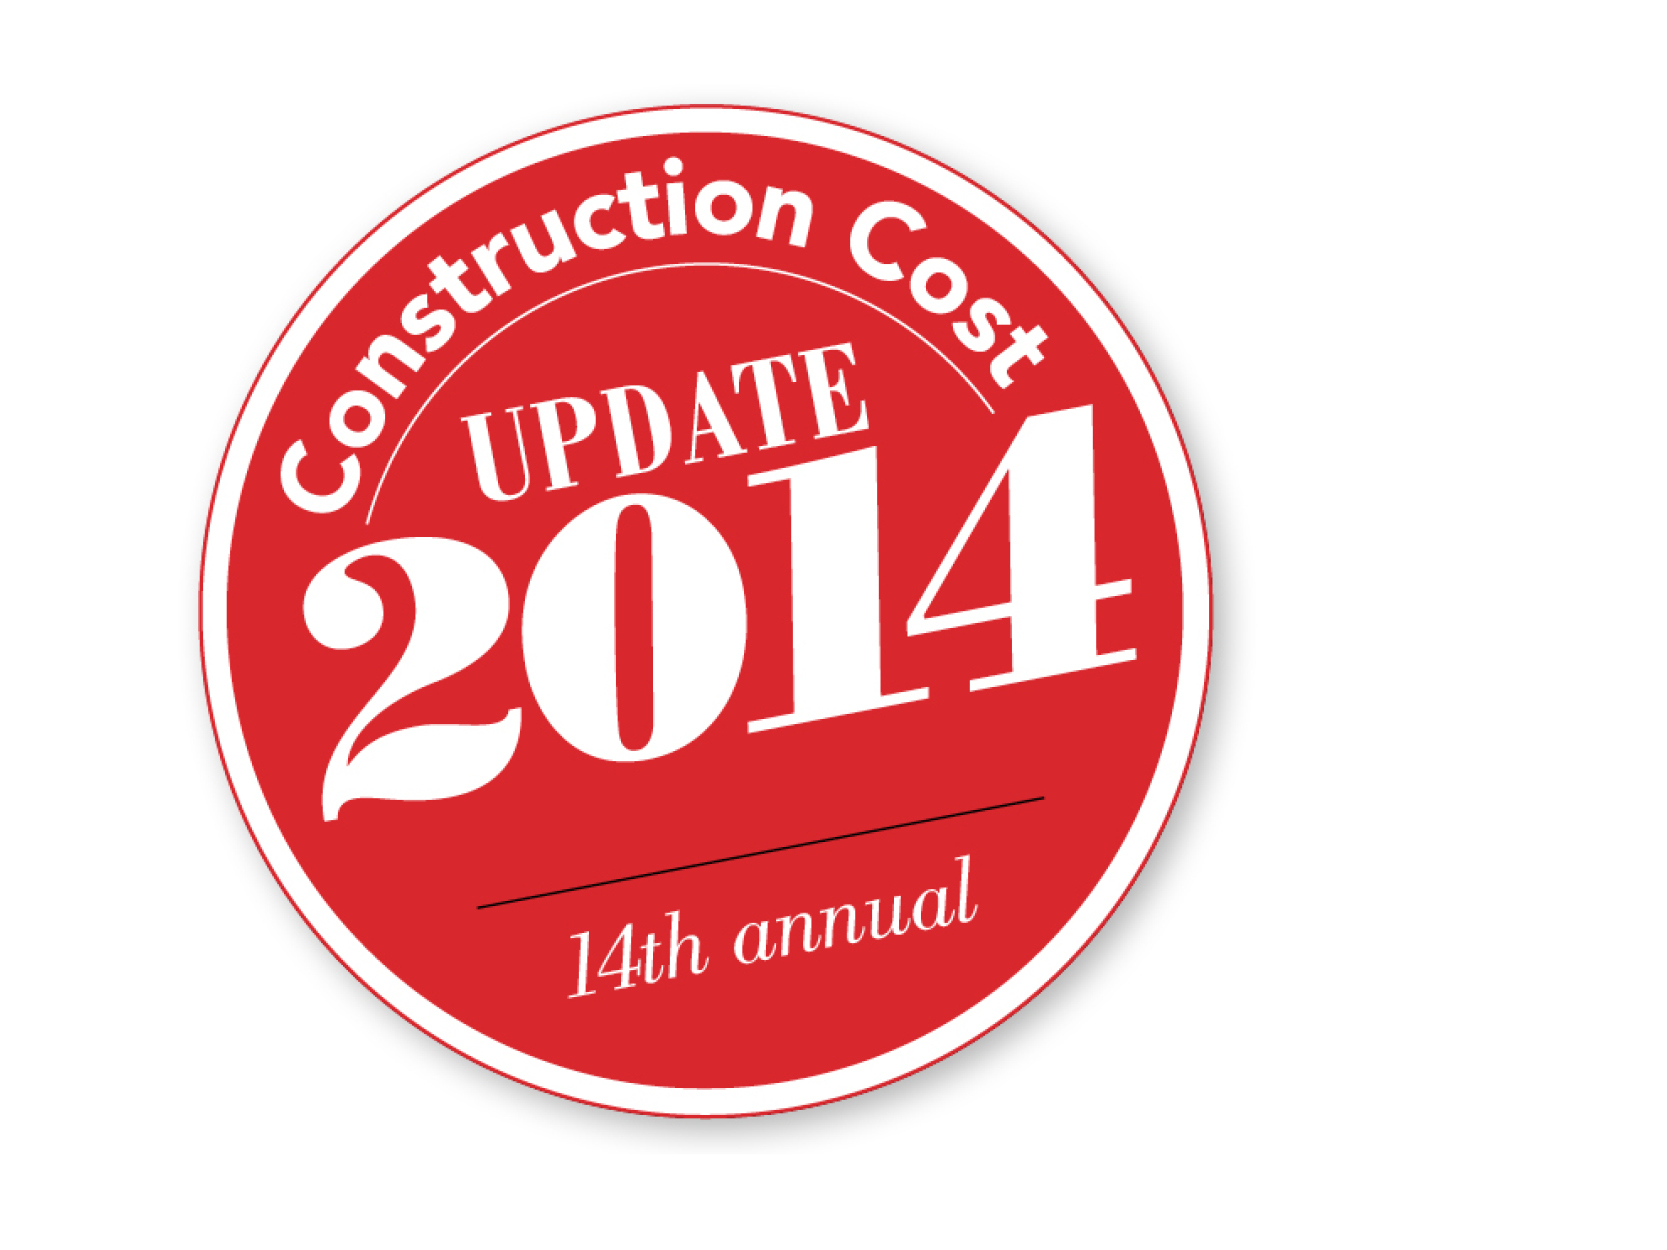 Preview of the resource library item for Kirksey's 14th Annual Construction Cost Update